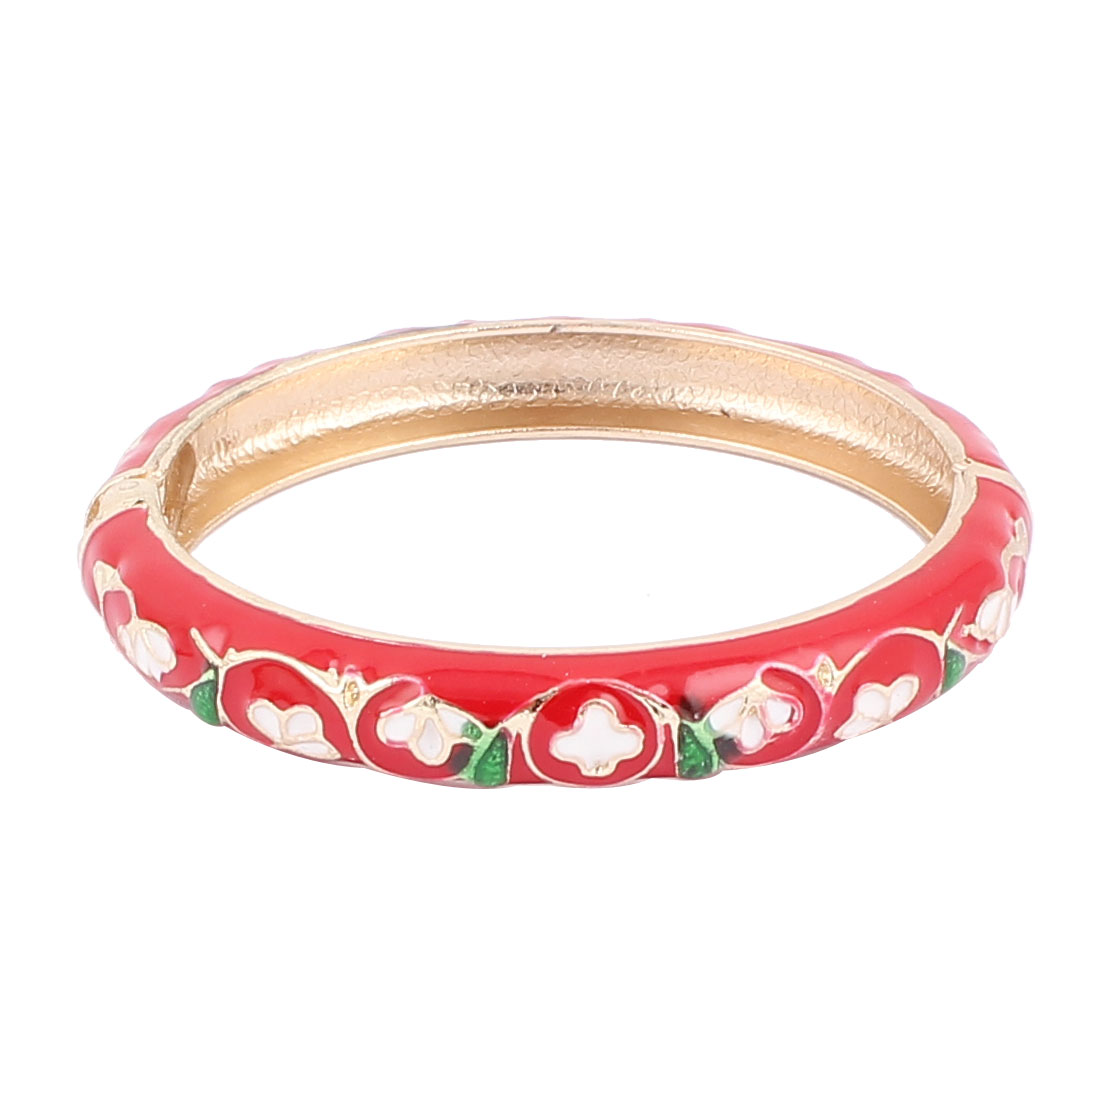 Woman Lady Spring Hinged Round Cuff Floral Pattern Enamel Bracelet Bangle Red